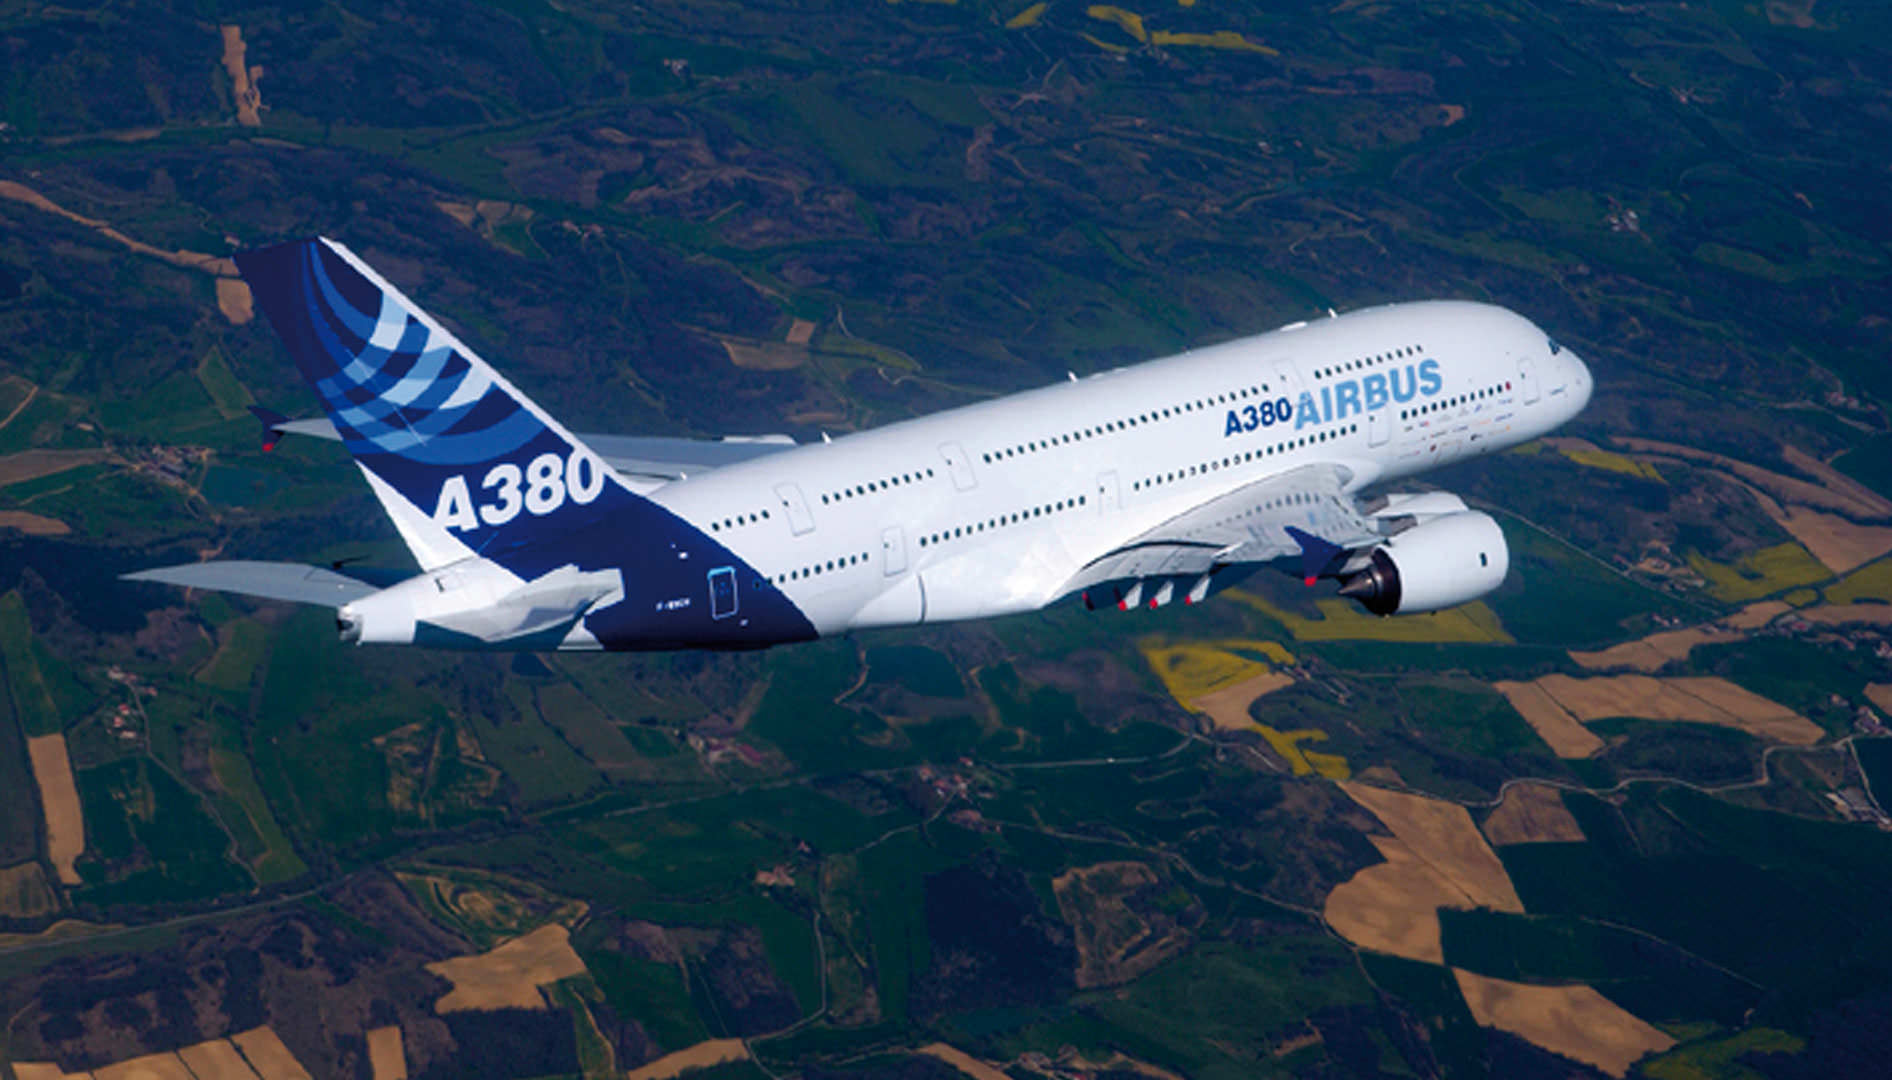 The A380 and the A-400 (military) are two of the latest models by Airbus to go on sale.